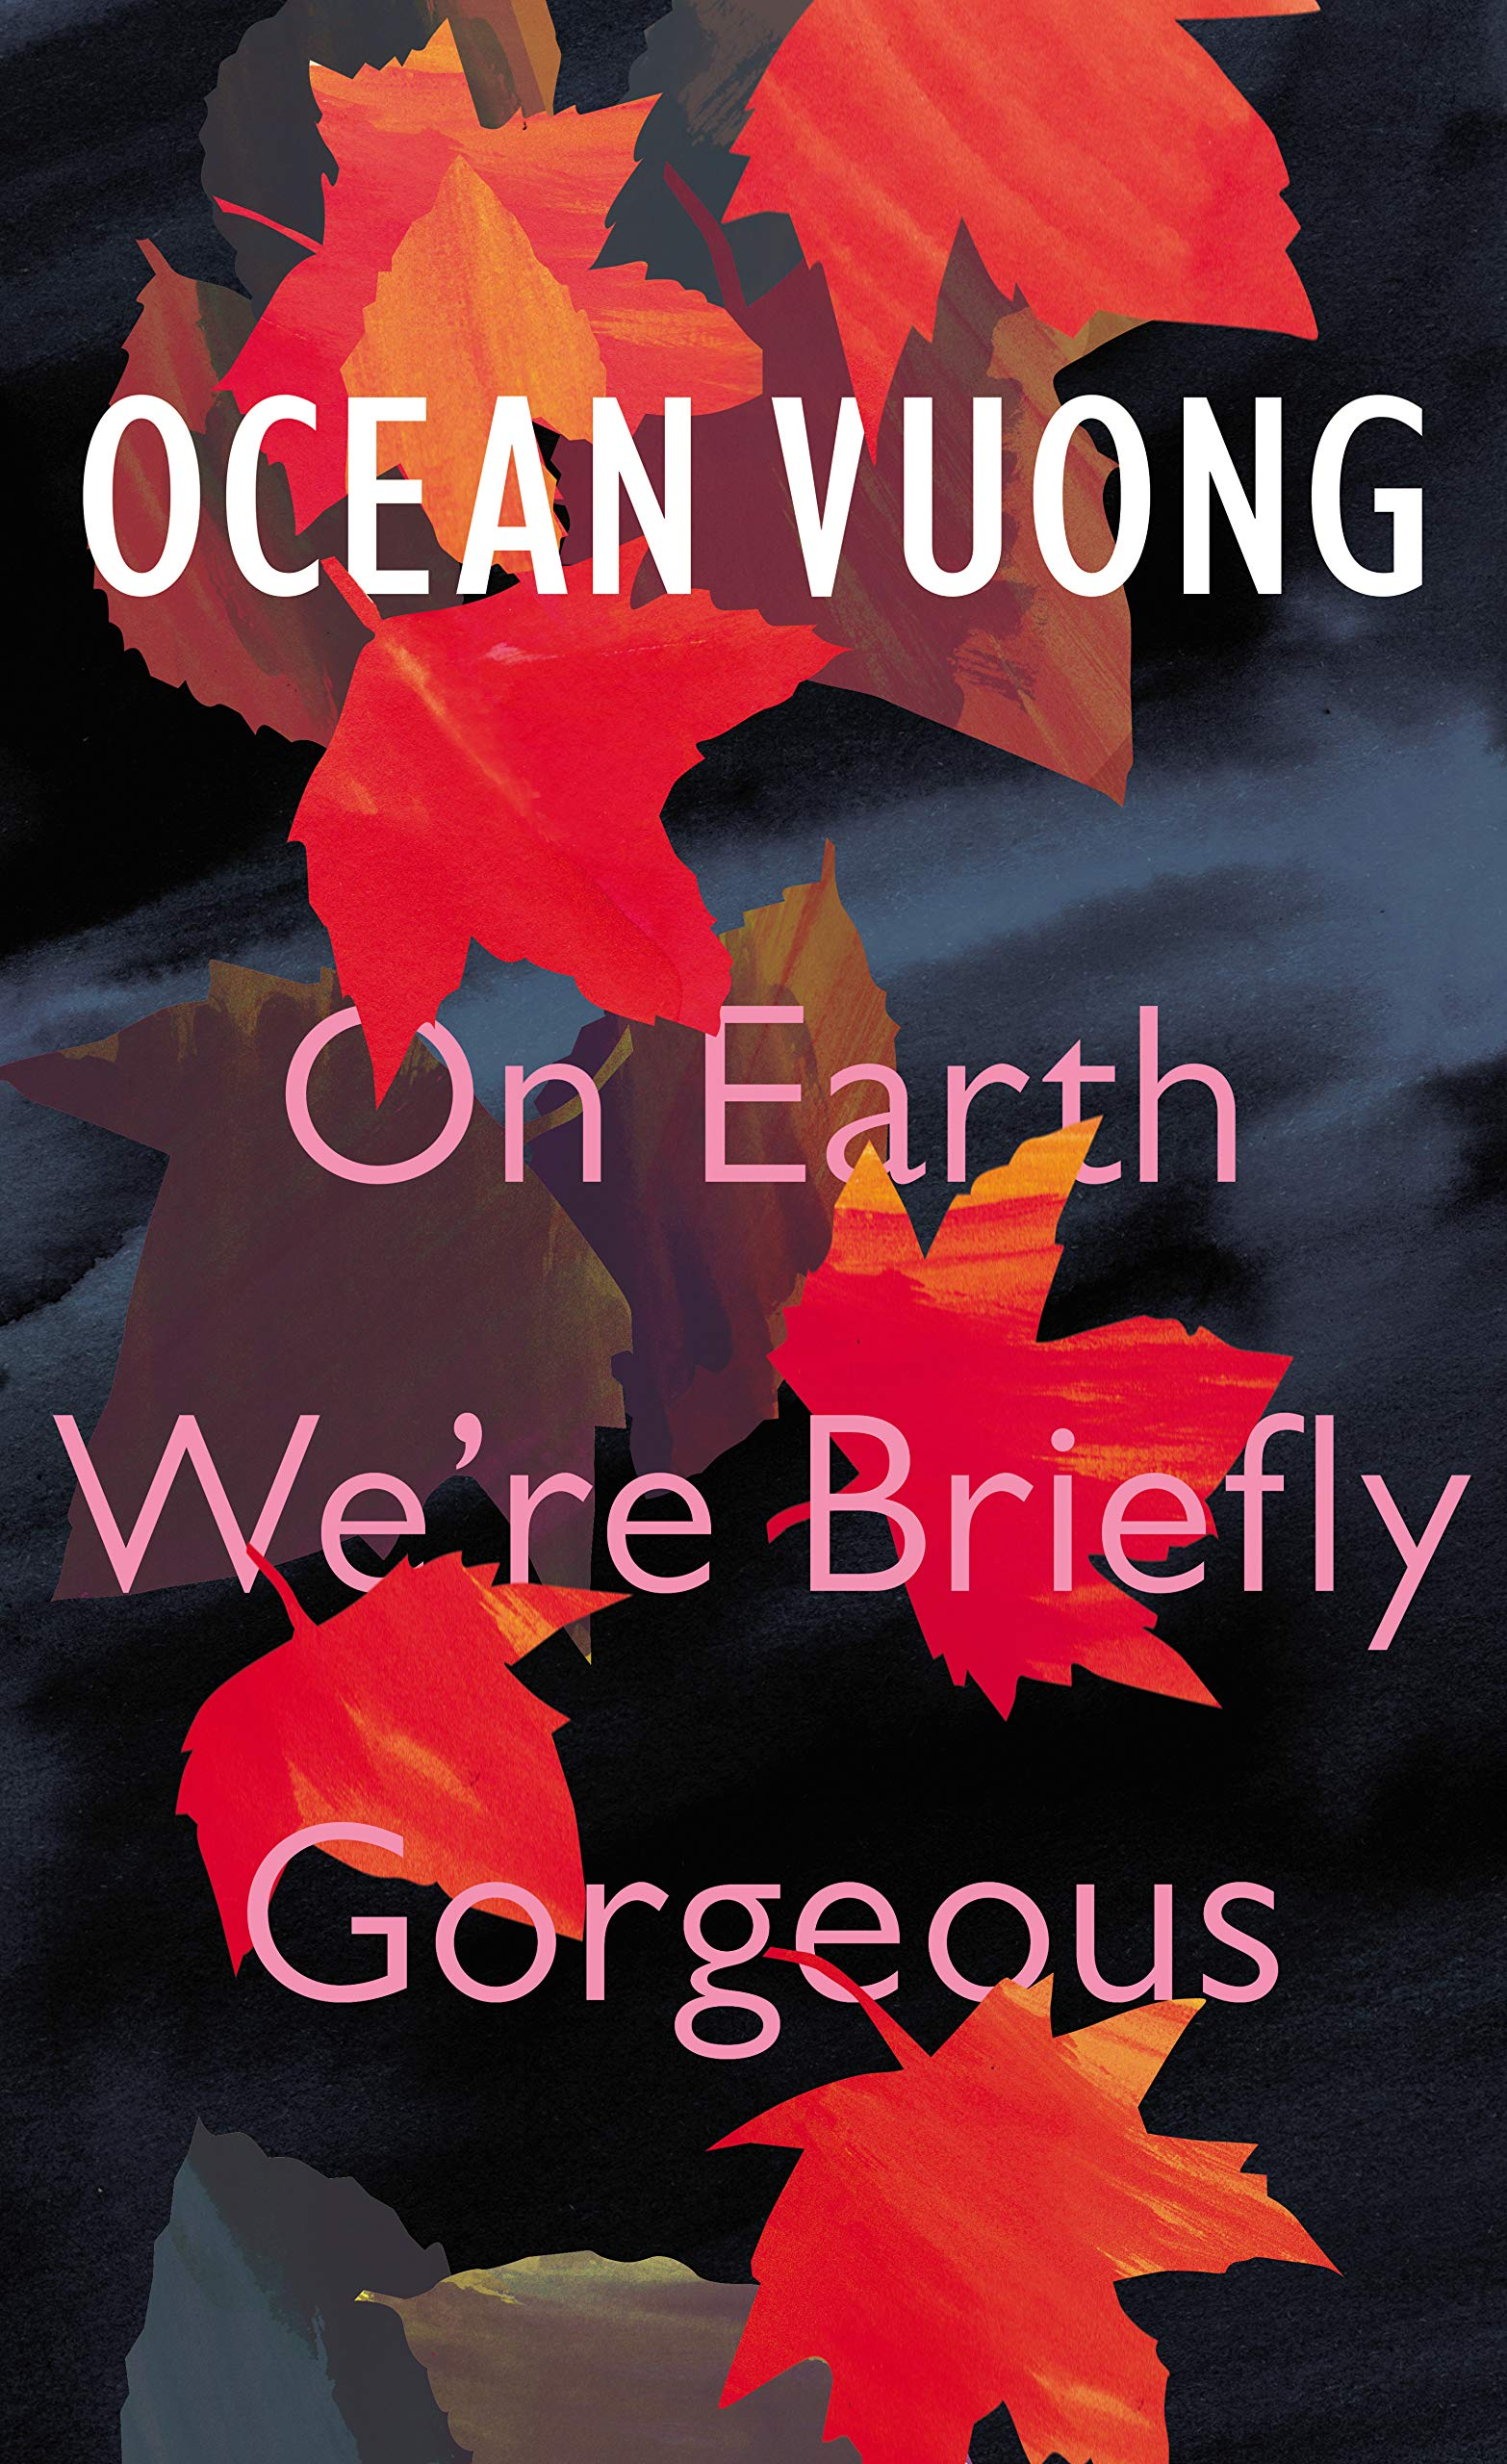 On Earth We're Briefly Gorgeous: Amazon.co.uk: Vuong, Ocean: 9781787331501:  Books